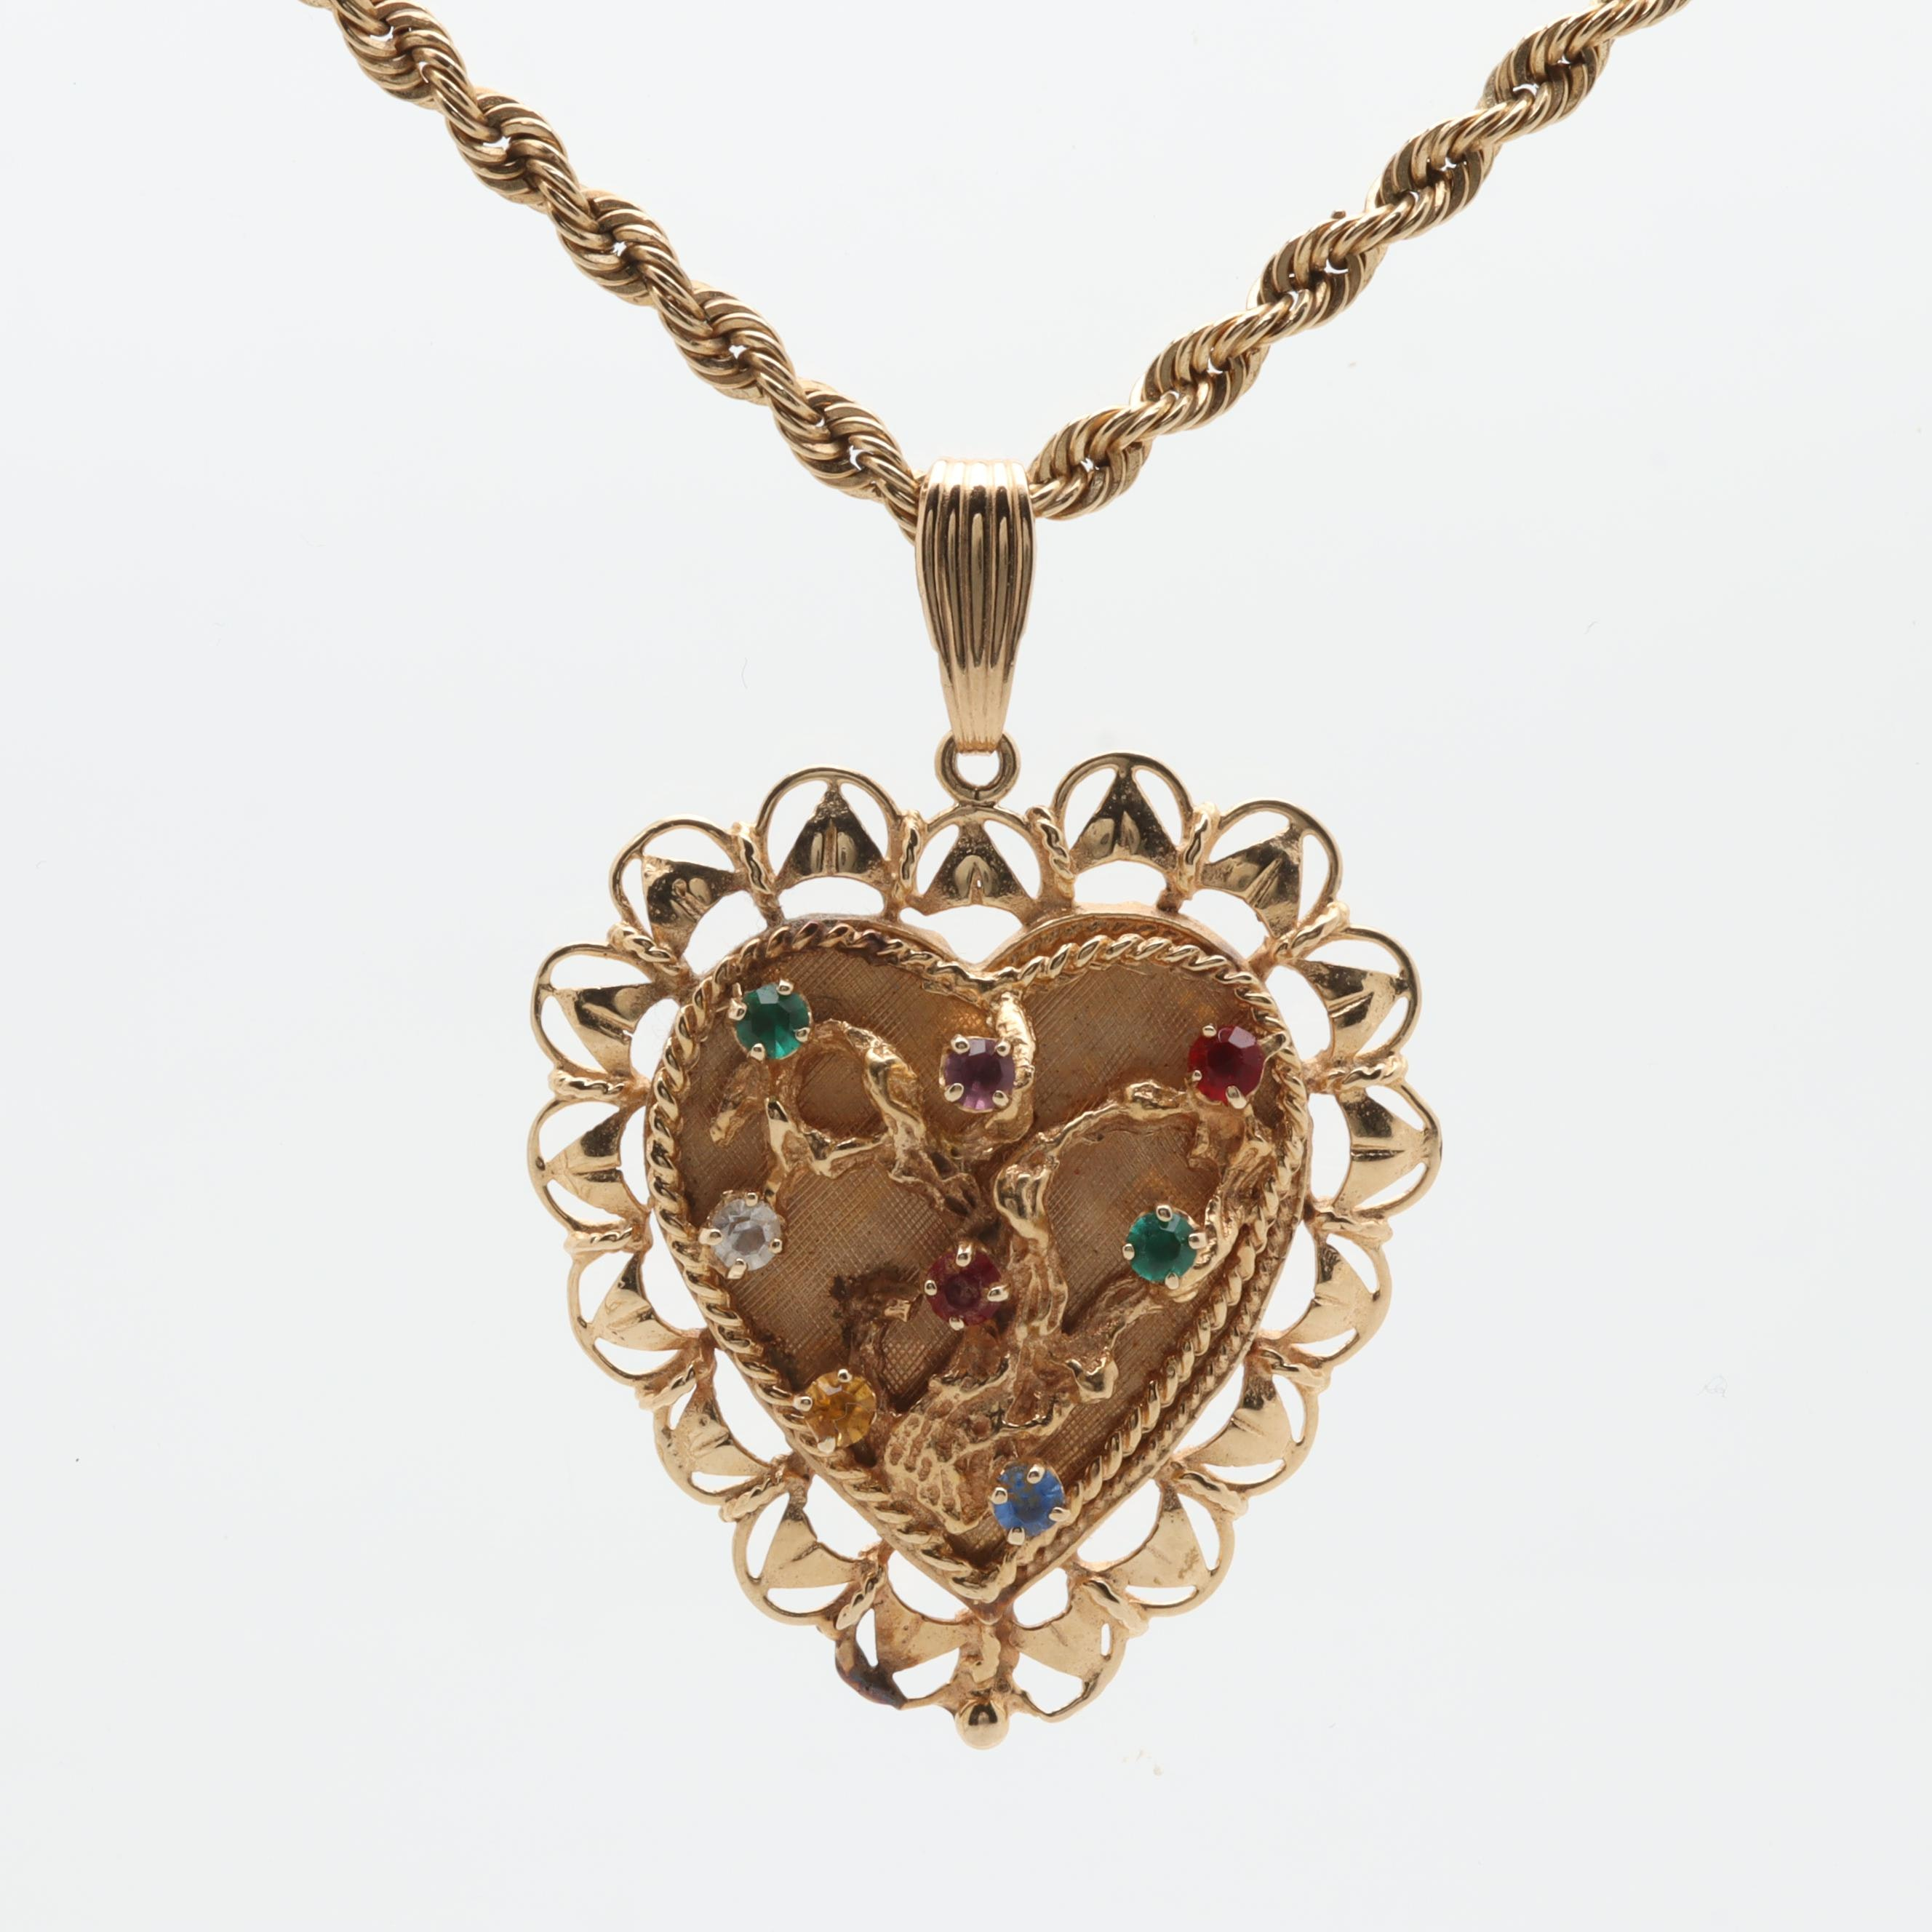 14K Yellow Gold Glass Pendant Necklace